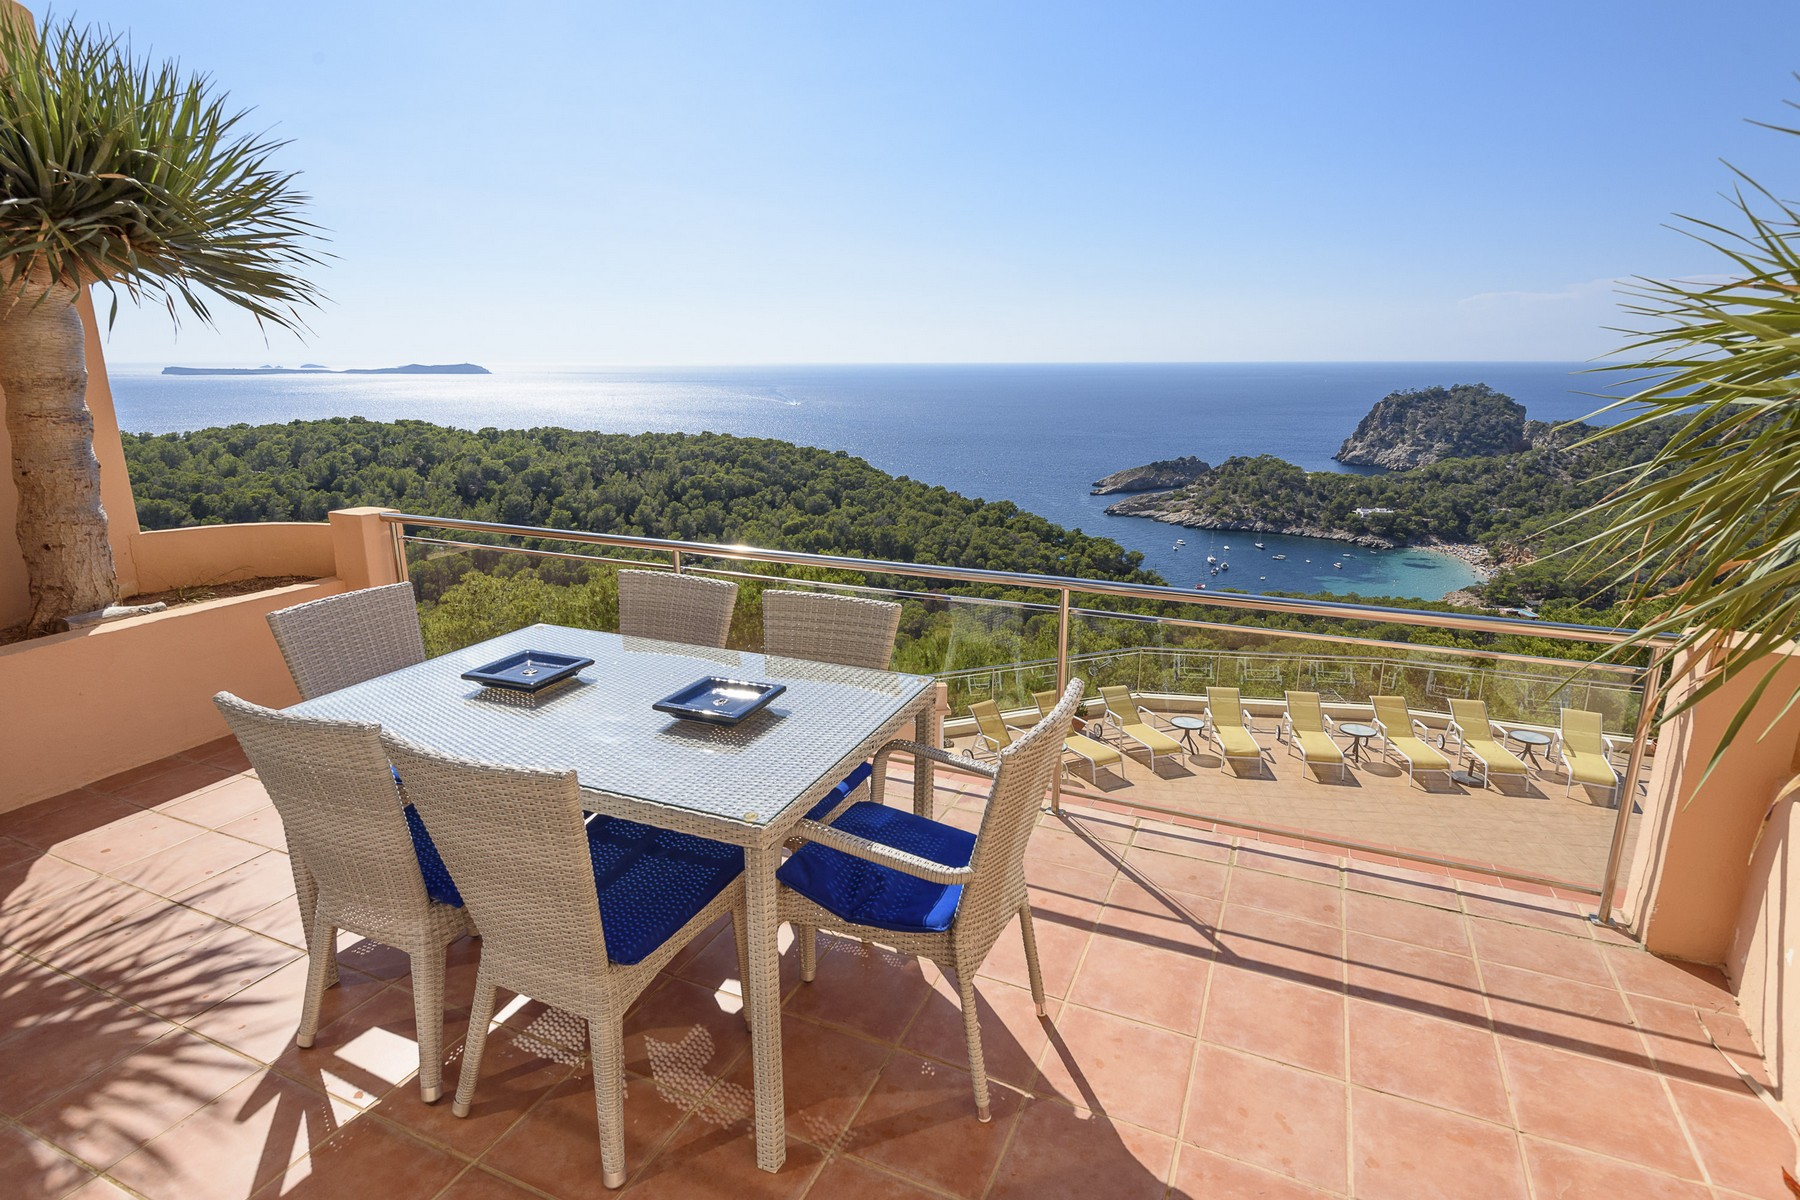 Single Family Home for Sale at Villa With Stunning Views Toward Cala Salada San Antonio, Ibiza, 07820 Spain